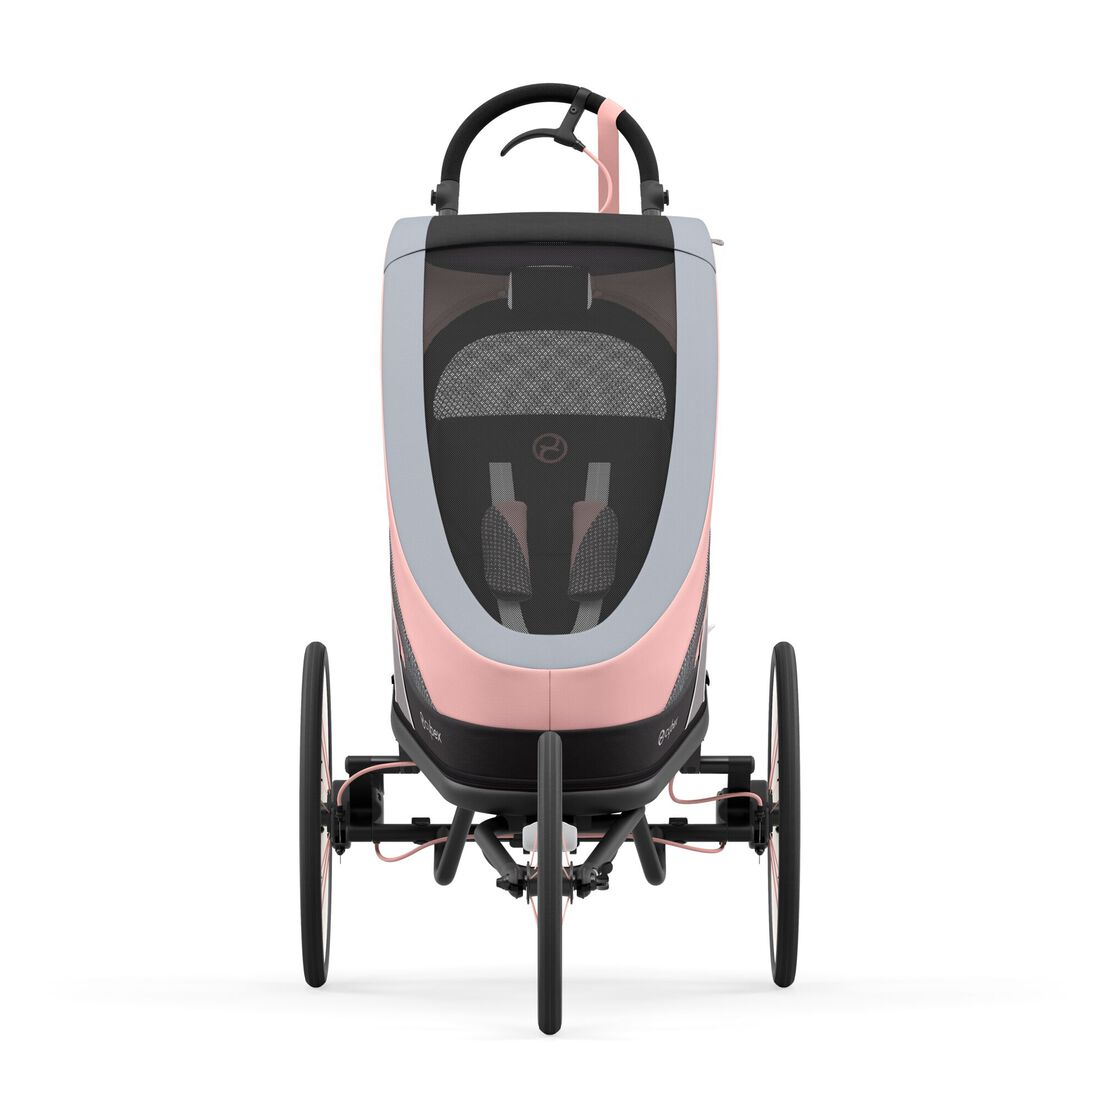 CYBEX Zeno Frame - Black With Pink Details in Black With Pink Details large image number 3